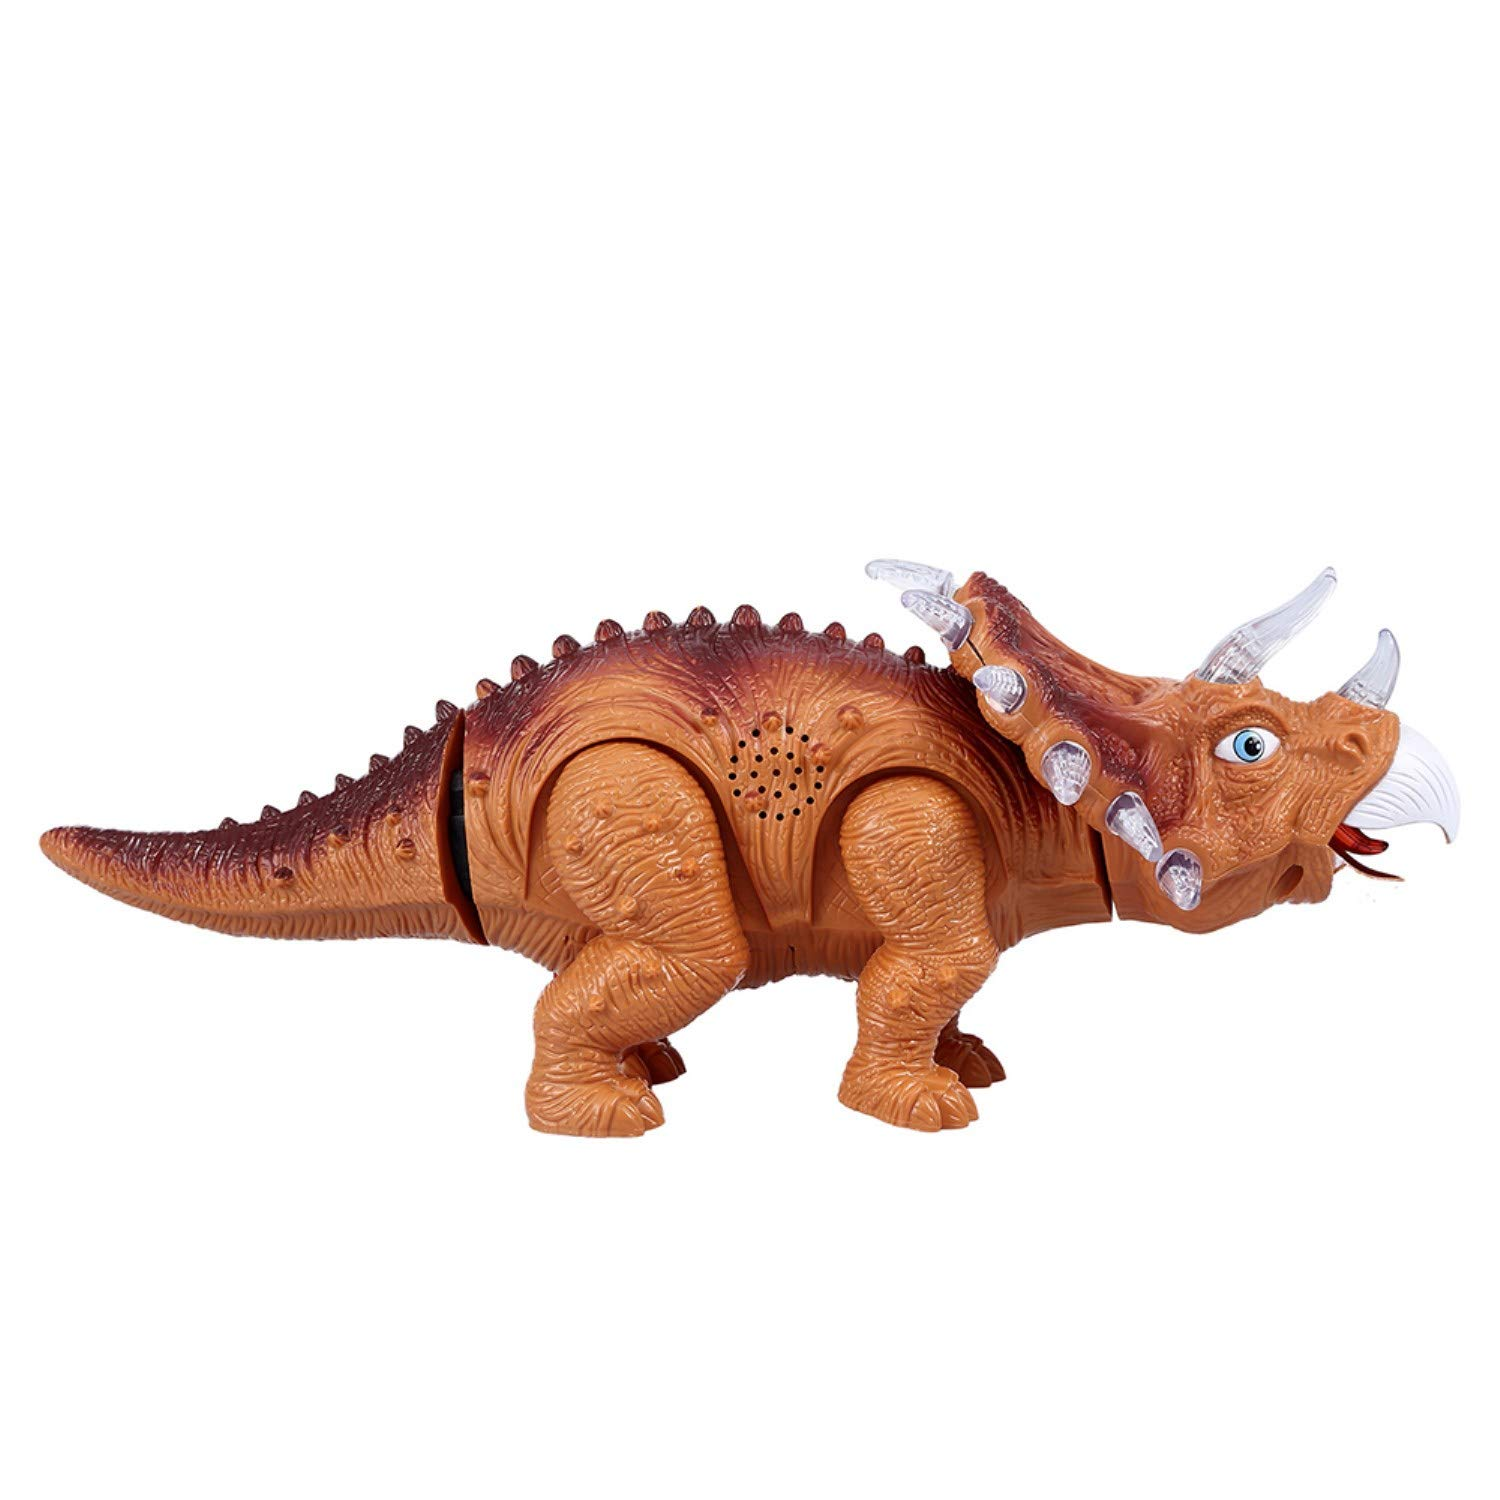 WomToy Walking Dinosaur Toys, Triceratops Dinosaur Toy Figure for Boys & Girls for Kids with Amazing Roar Sounds, Lights & Movement by WomToy (Image #7)